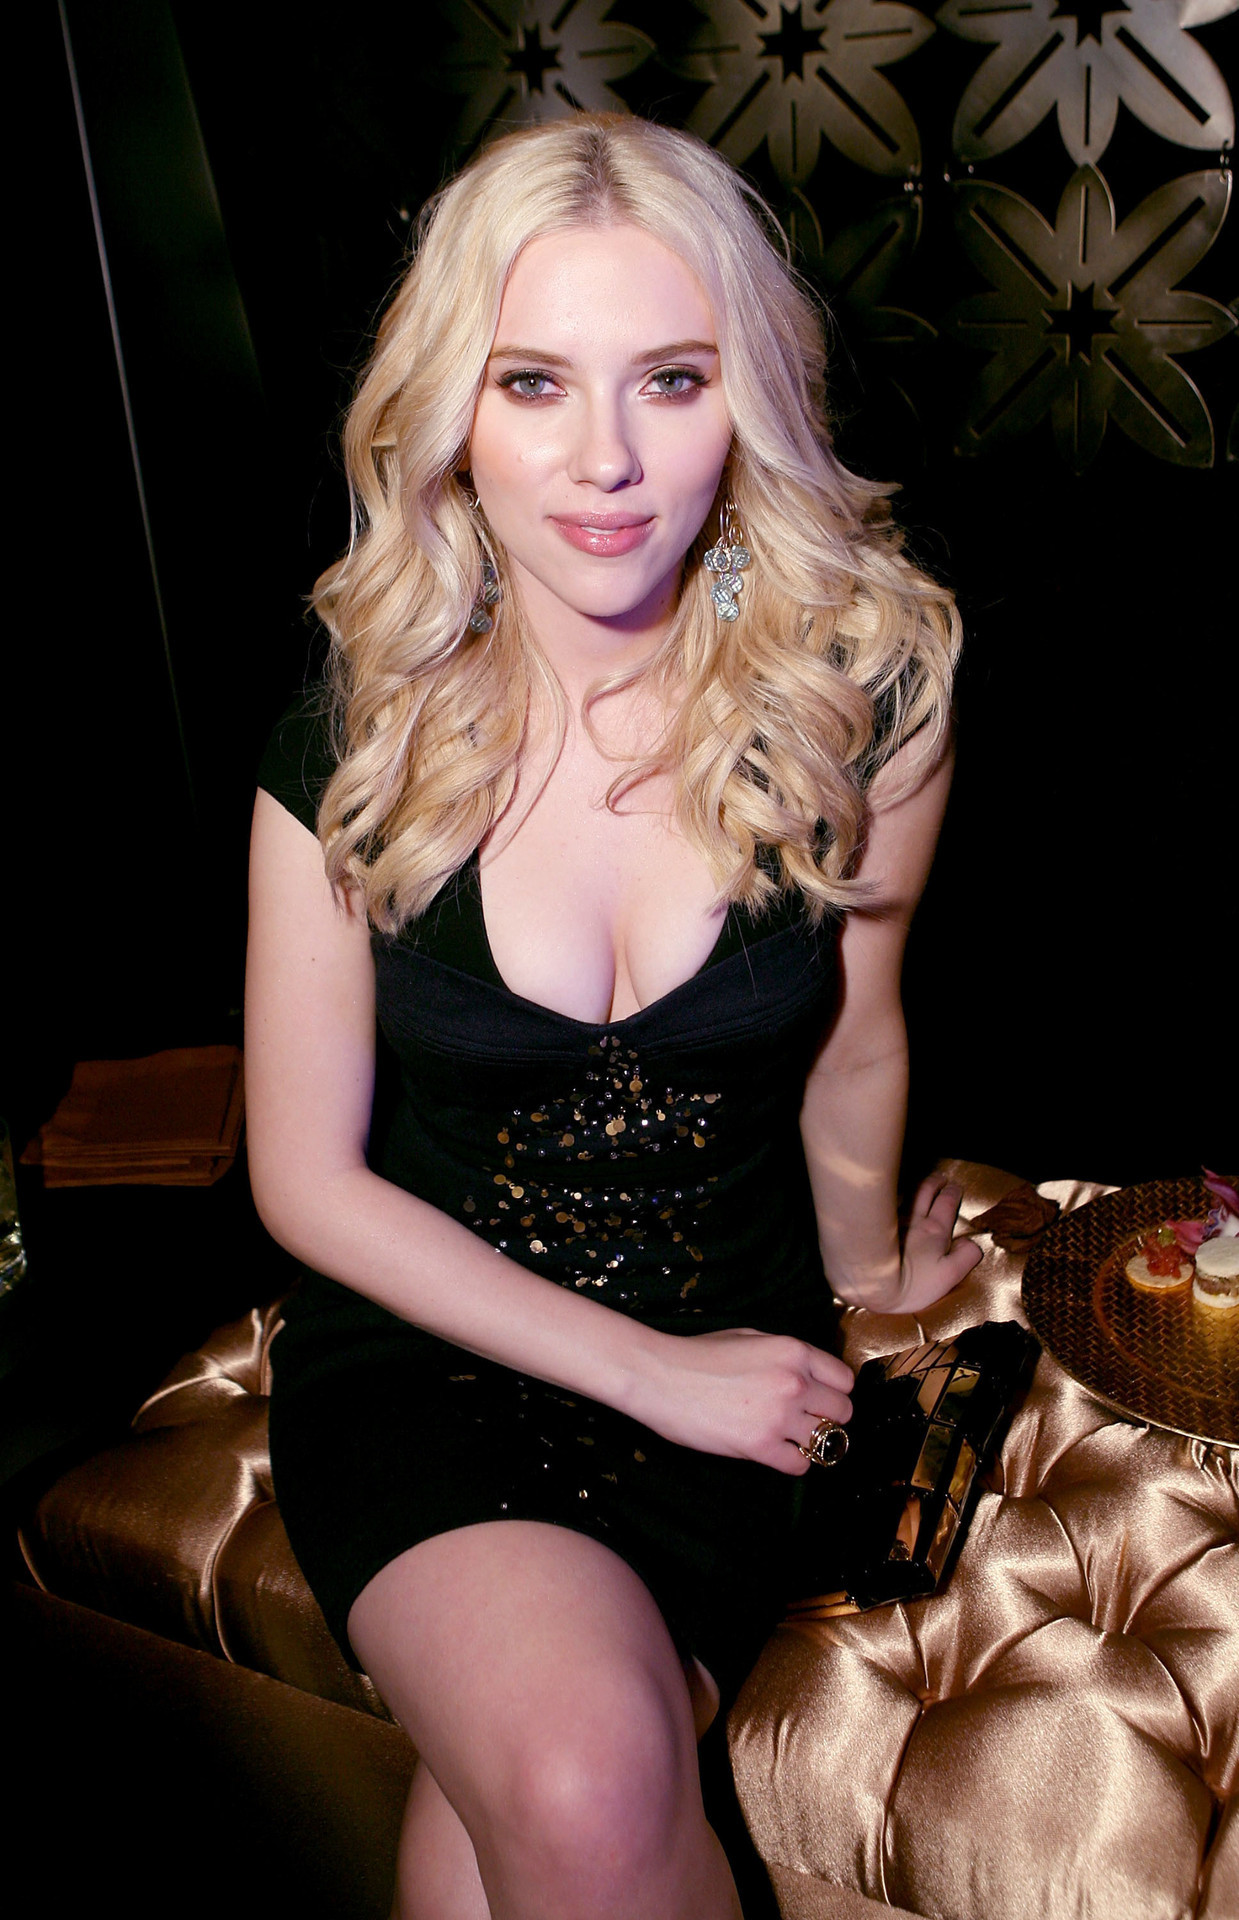 Scarlett Johansson Eyecandy by androsForm | The finest